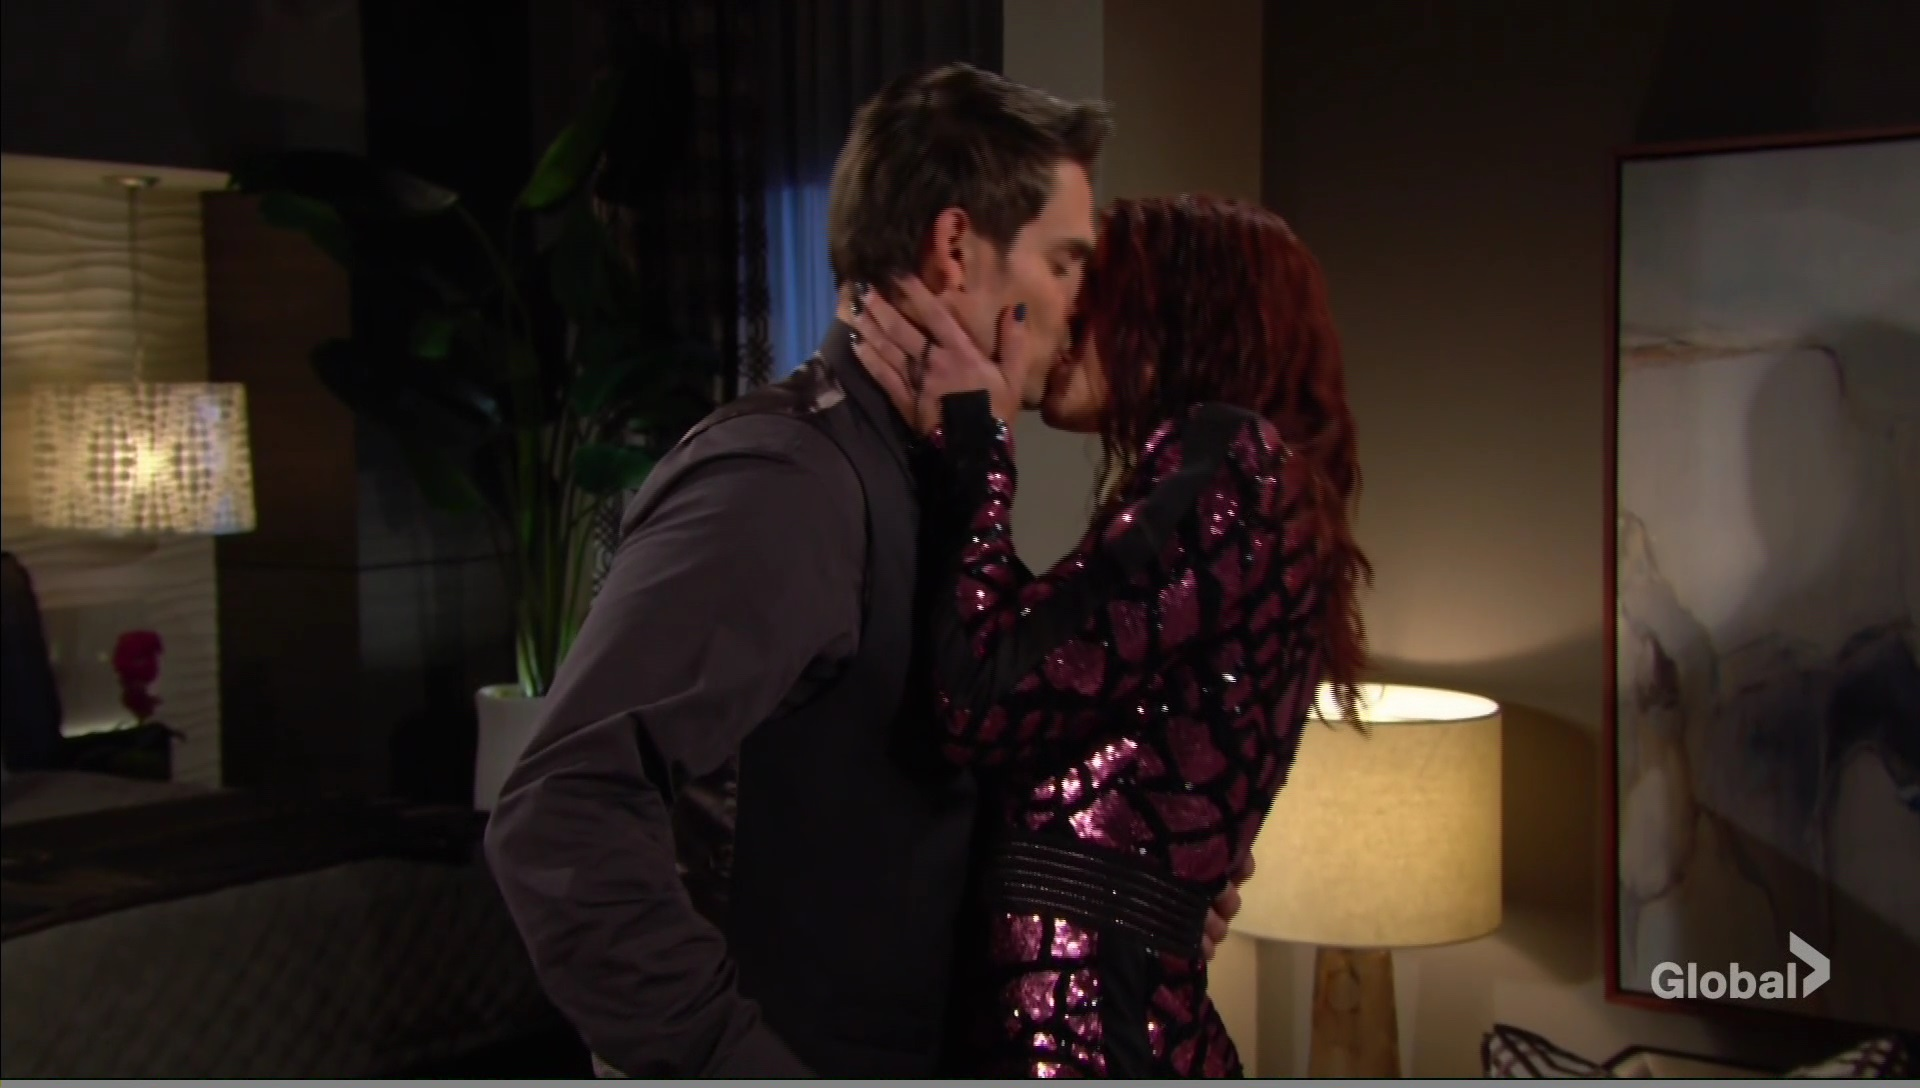 adam sally kissing young restless